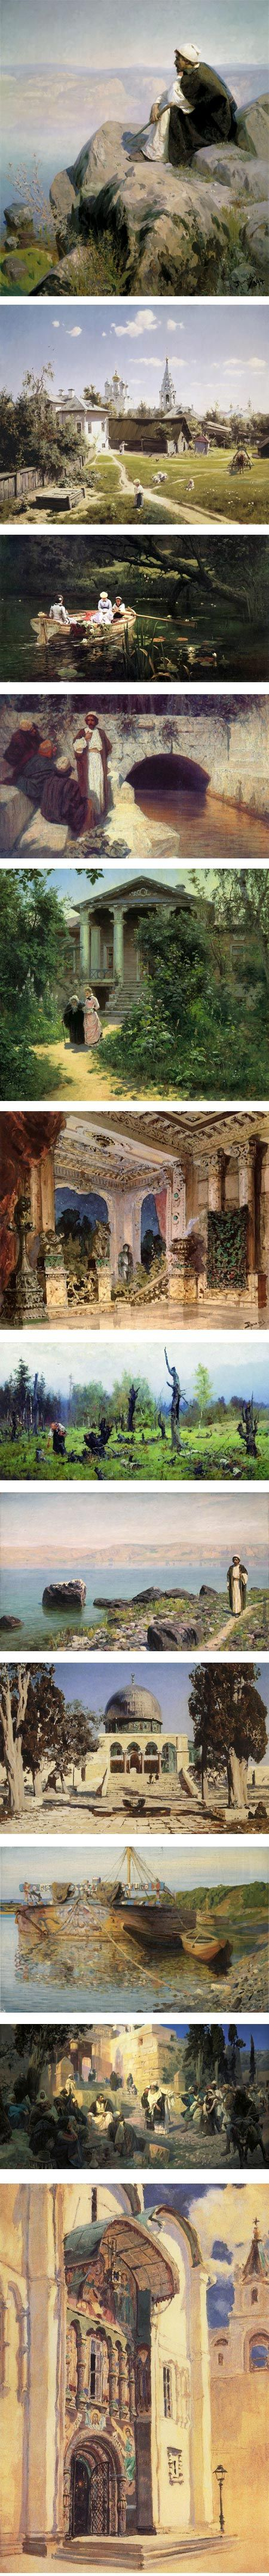 Vasily Polenov | Lines and Colors :: a blog about drawing, painting, illustration, comics, concept art and other visual arts